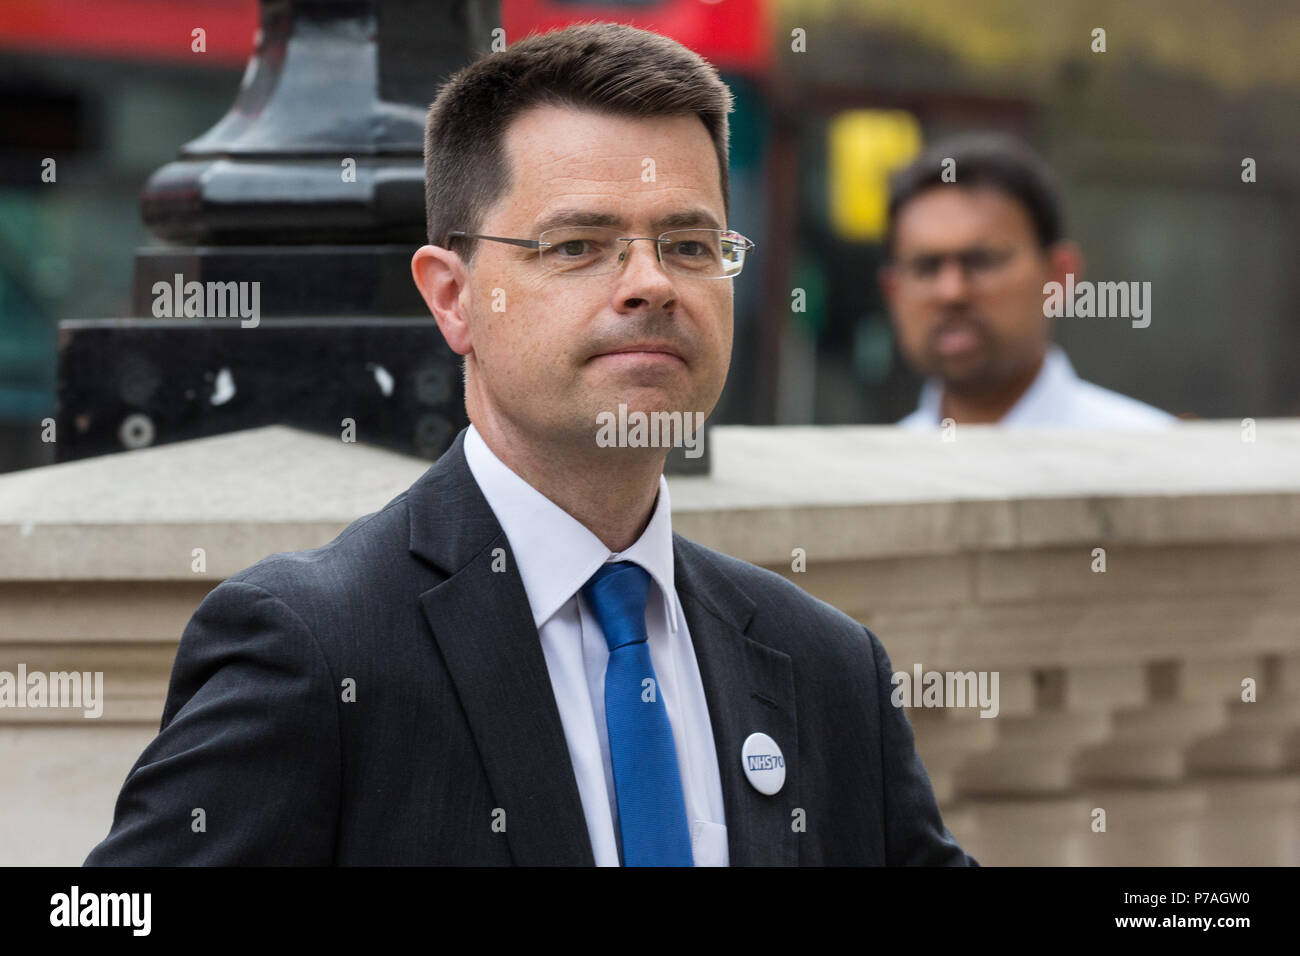 London, UK. 5th July, 2018. James Brokenshire, Secretary of State for Housing, Communities and Local Government, arrives for a meeting of the Government's Cobra emergency committee to discuss the UK's response to the latest Novichok nerve agent poisonings in Wiltshire. Credit: Mark Kerrison/Alamy Live News - Stock Image